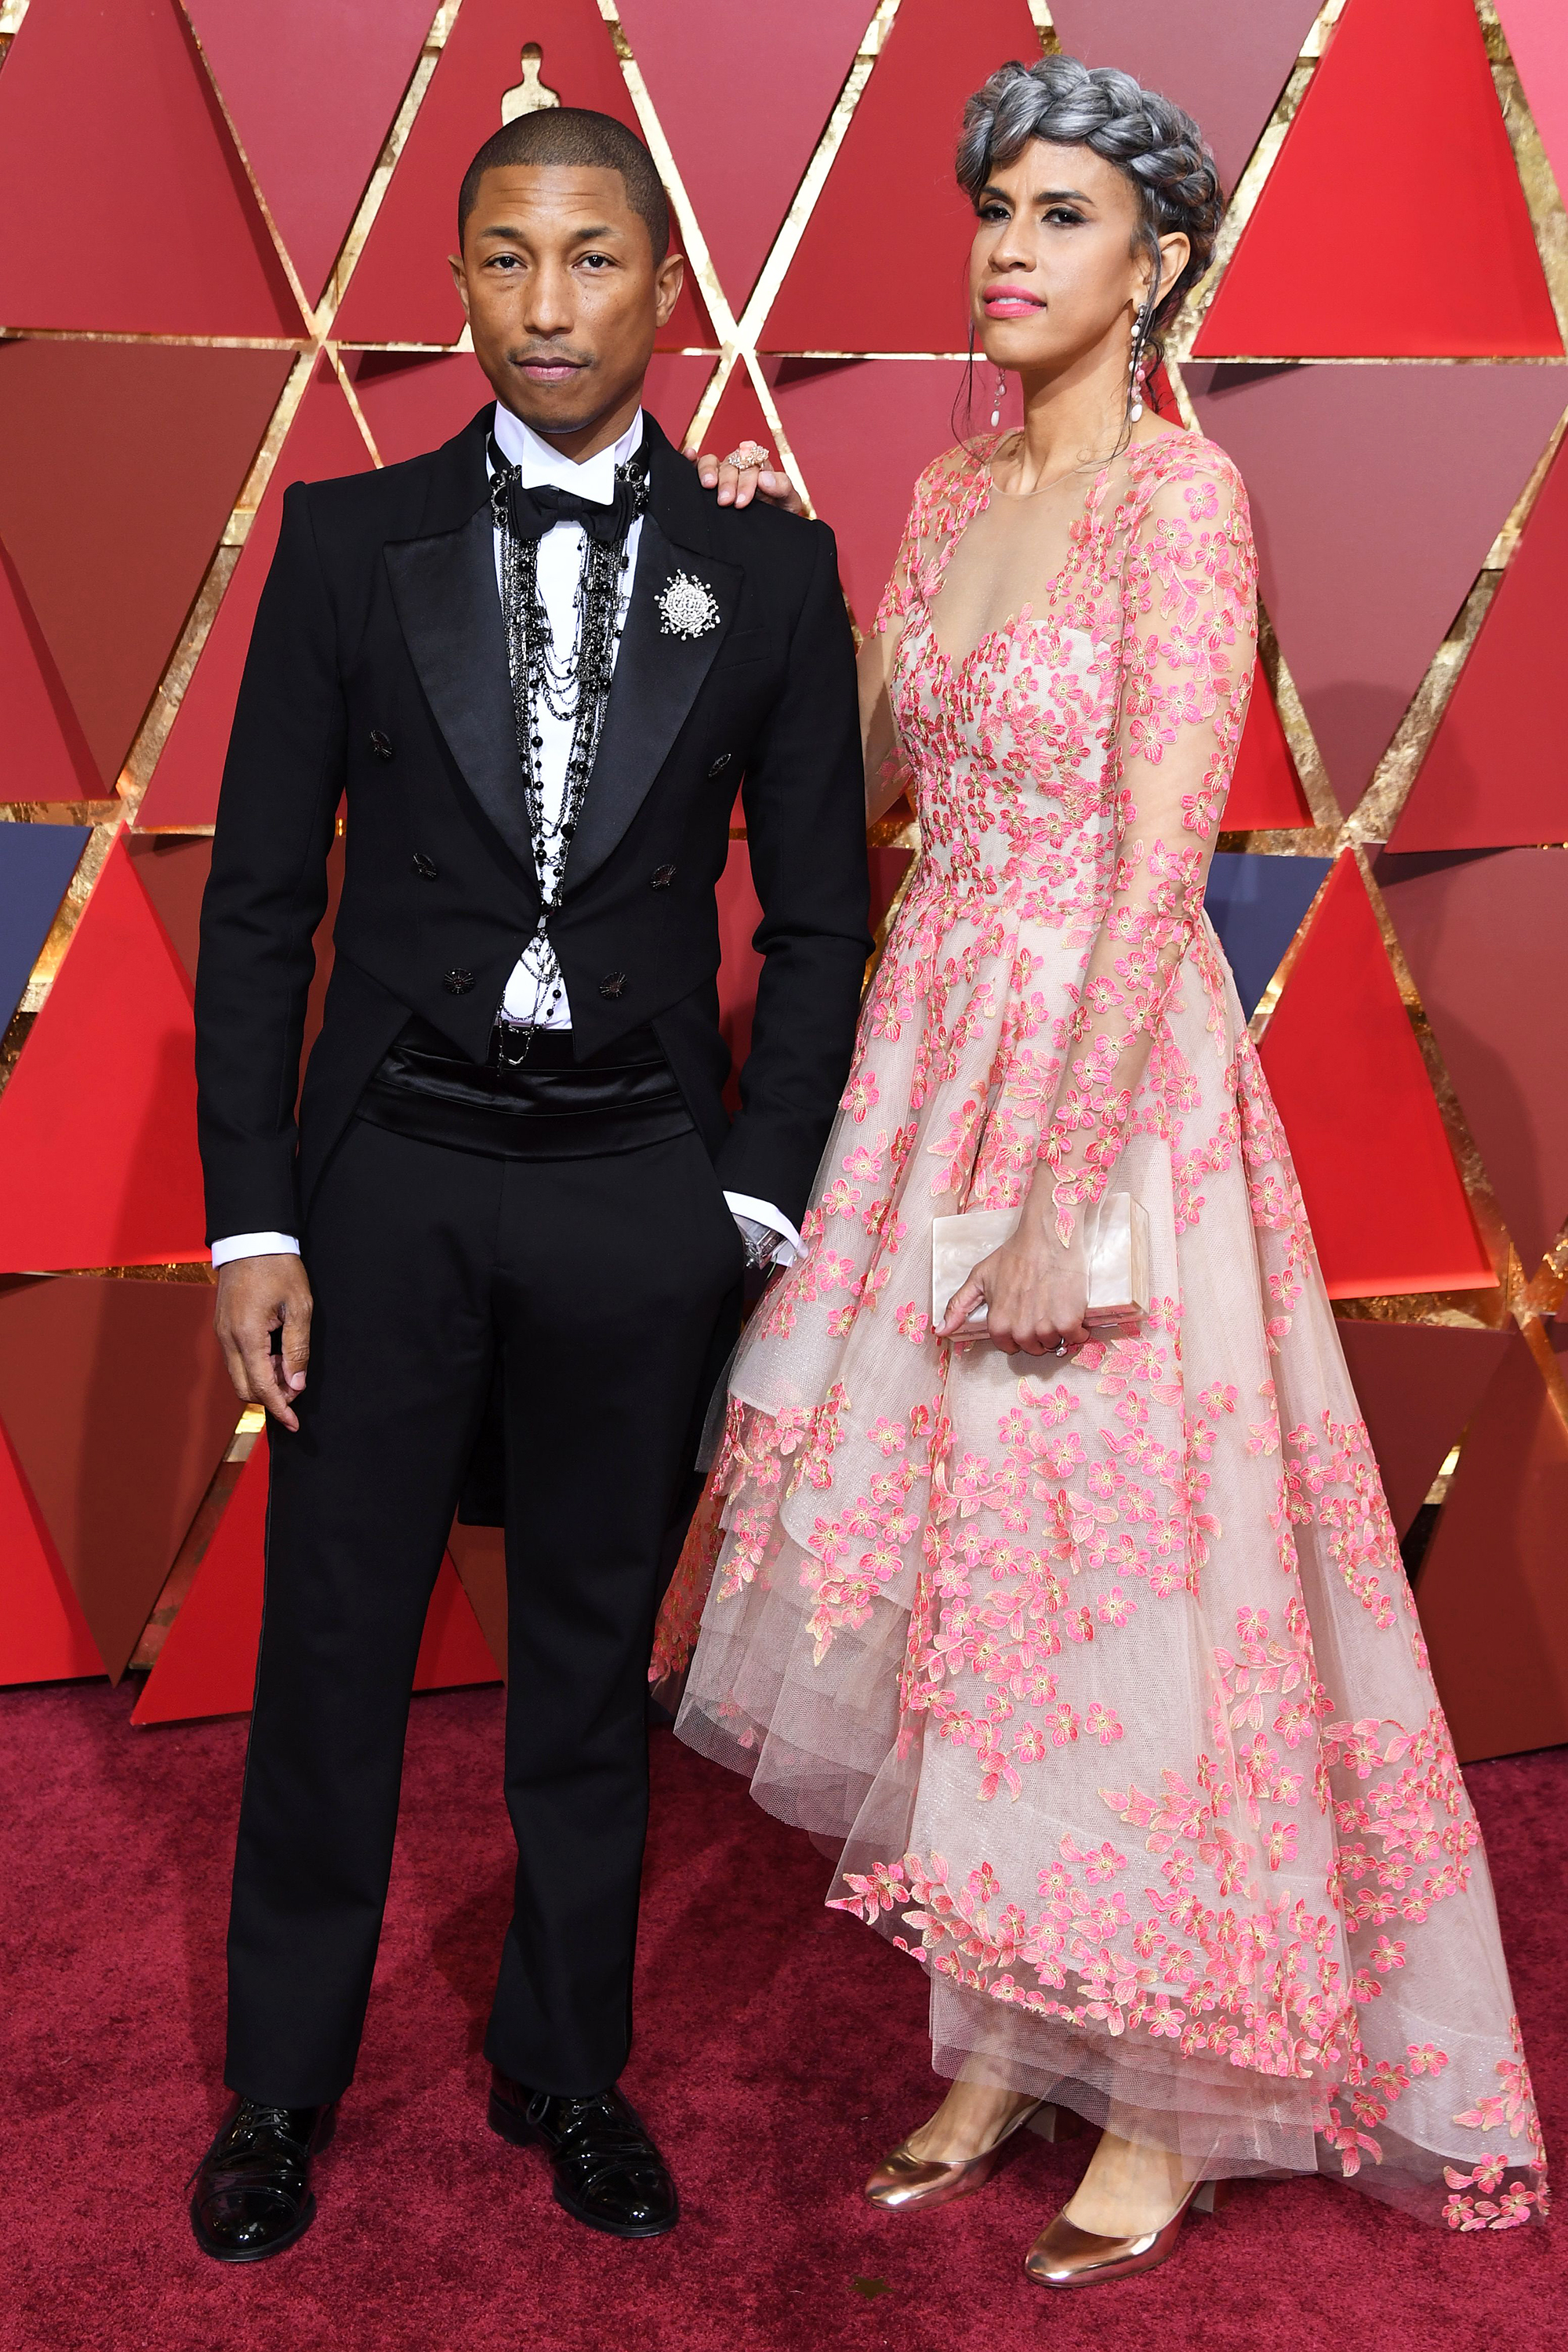 Pharrell Williams and Helen Lasichanh on the red carpet for the 89th Oscars, on Feb. 26, 2017 in Hollywood, Calif.